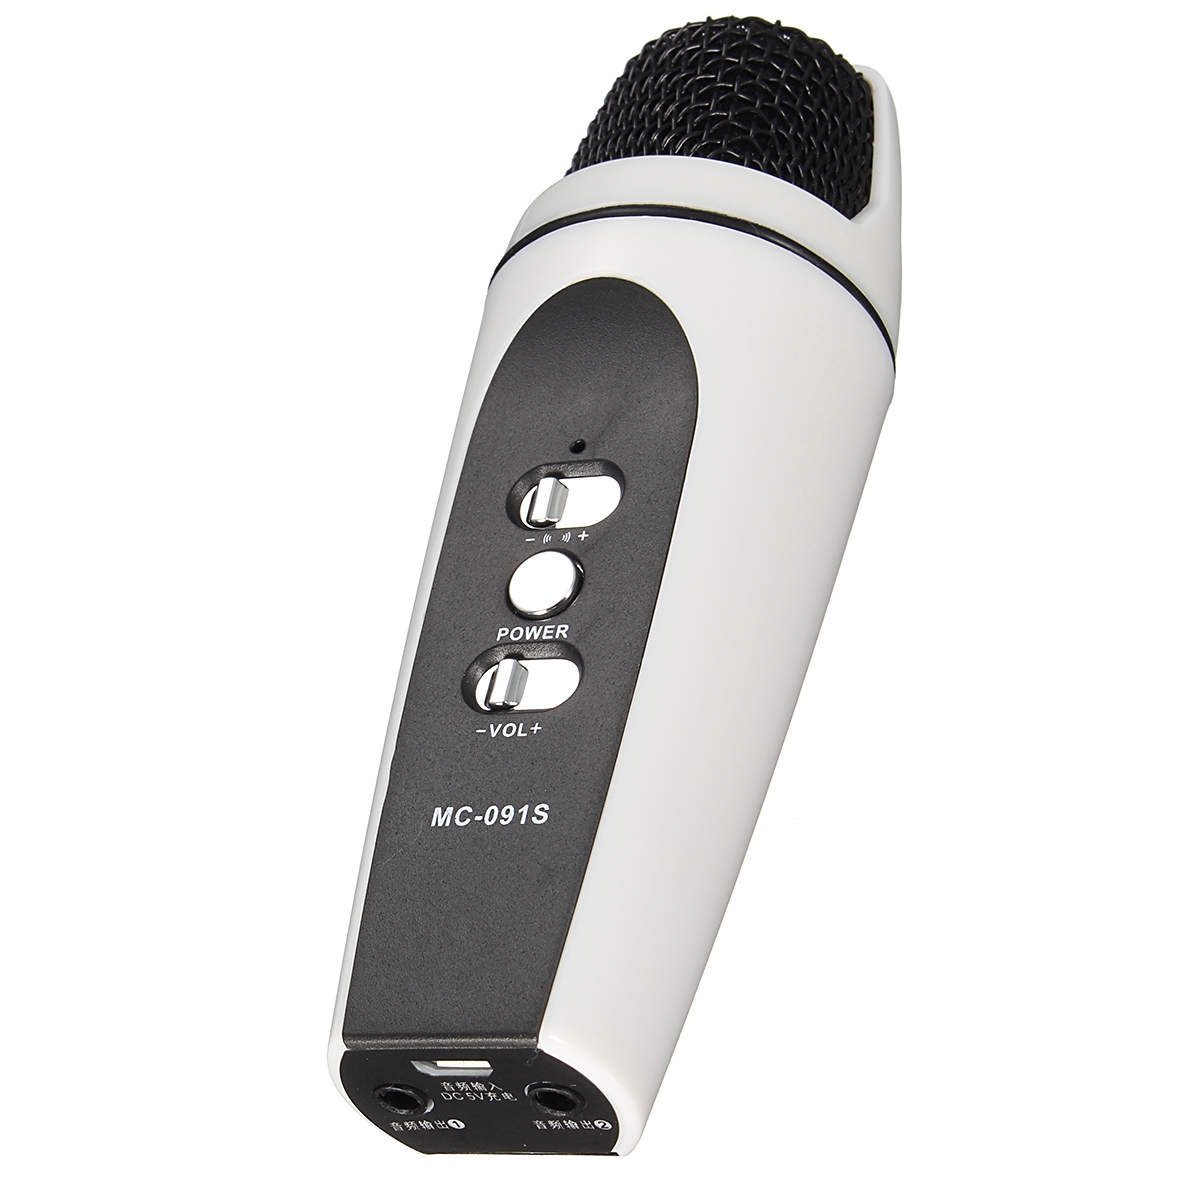 Min Stereo Handheld Portable KTV Sing Record Microphone for iPhone 7 Samsung Xiaomi